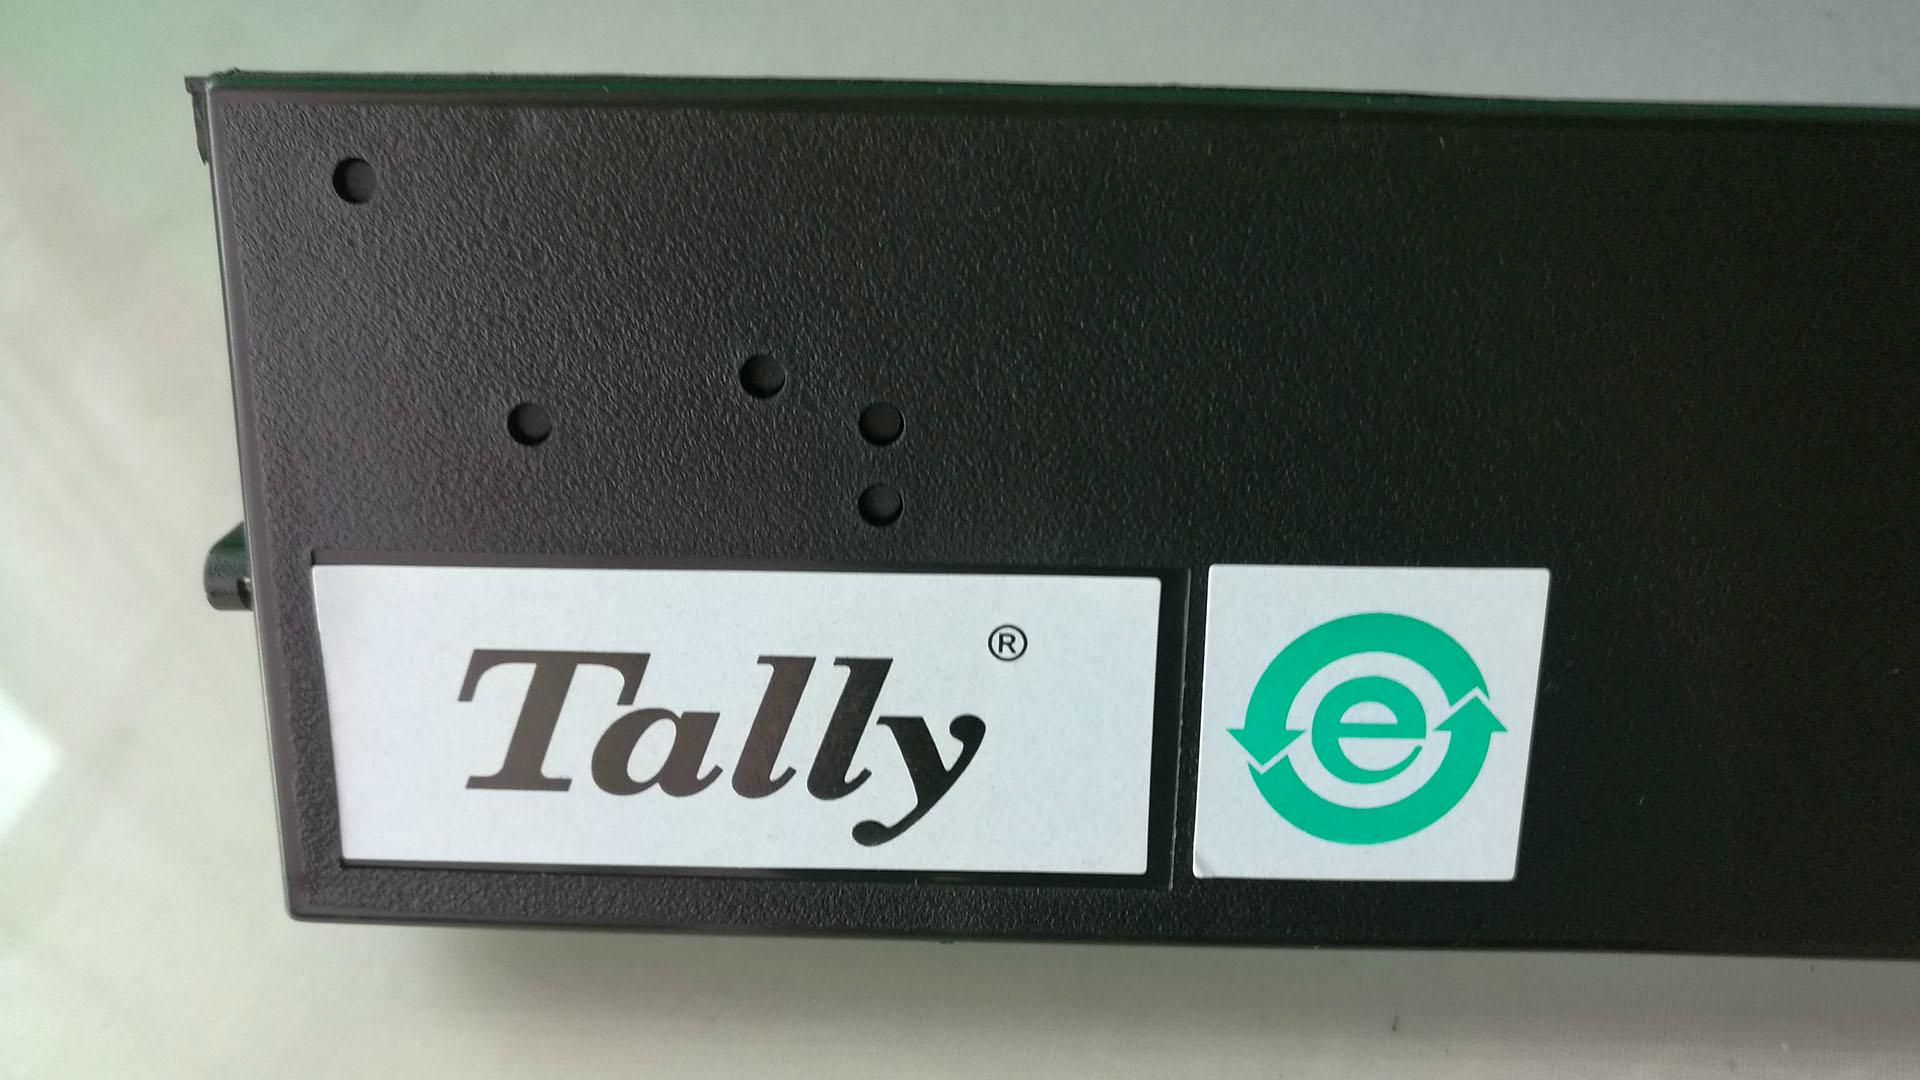 Tally T5040,TallyGenicom T5040 Ribbon